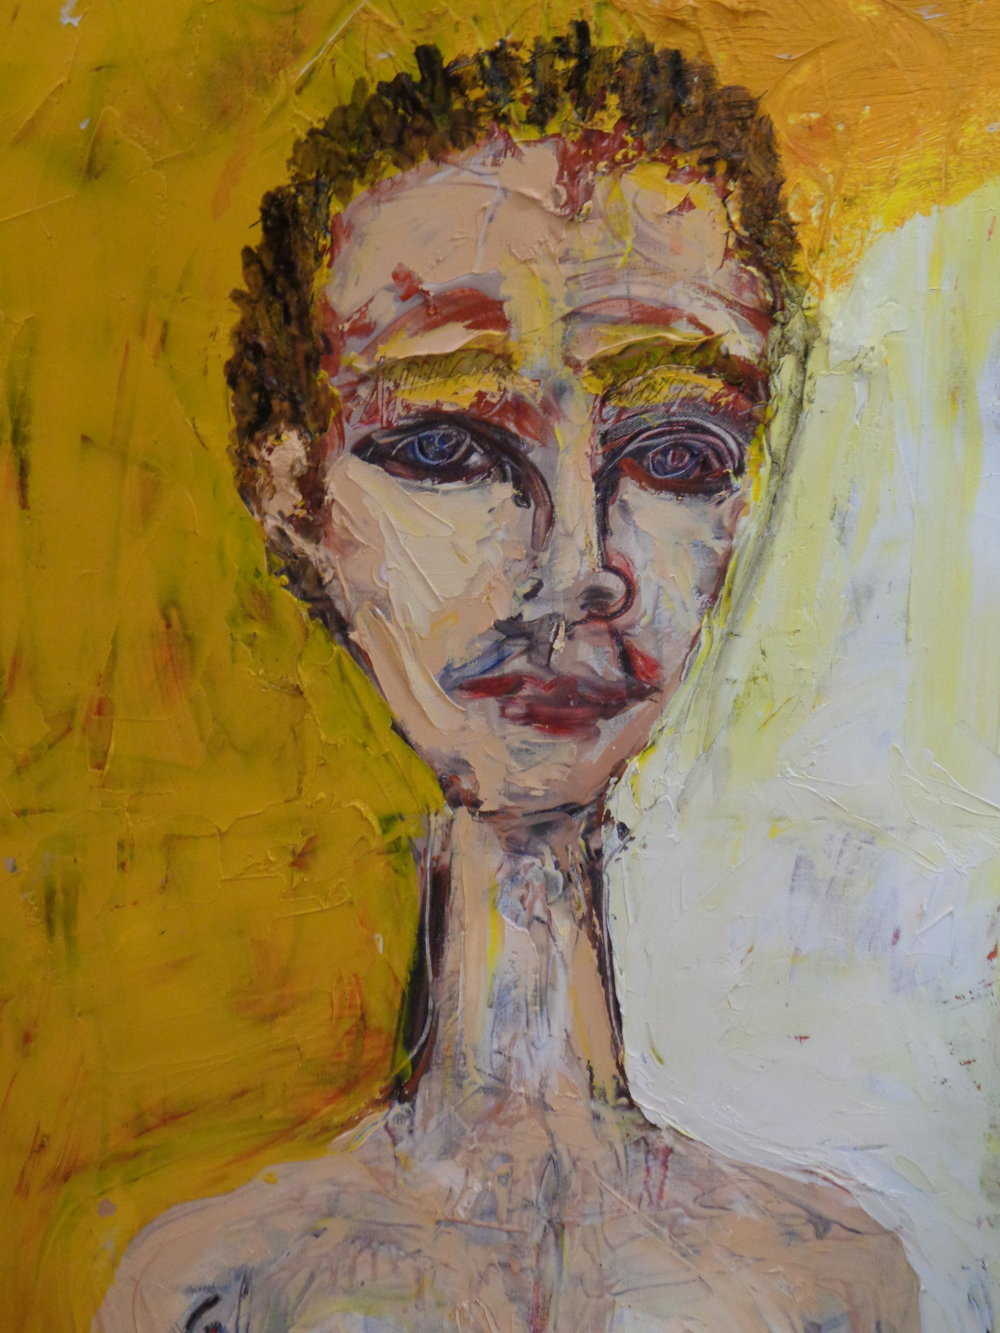 Siobhan With a Long Neck - oil on canvas 2018